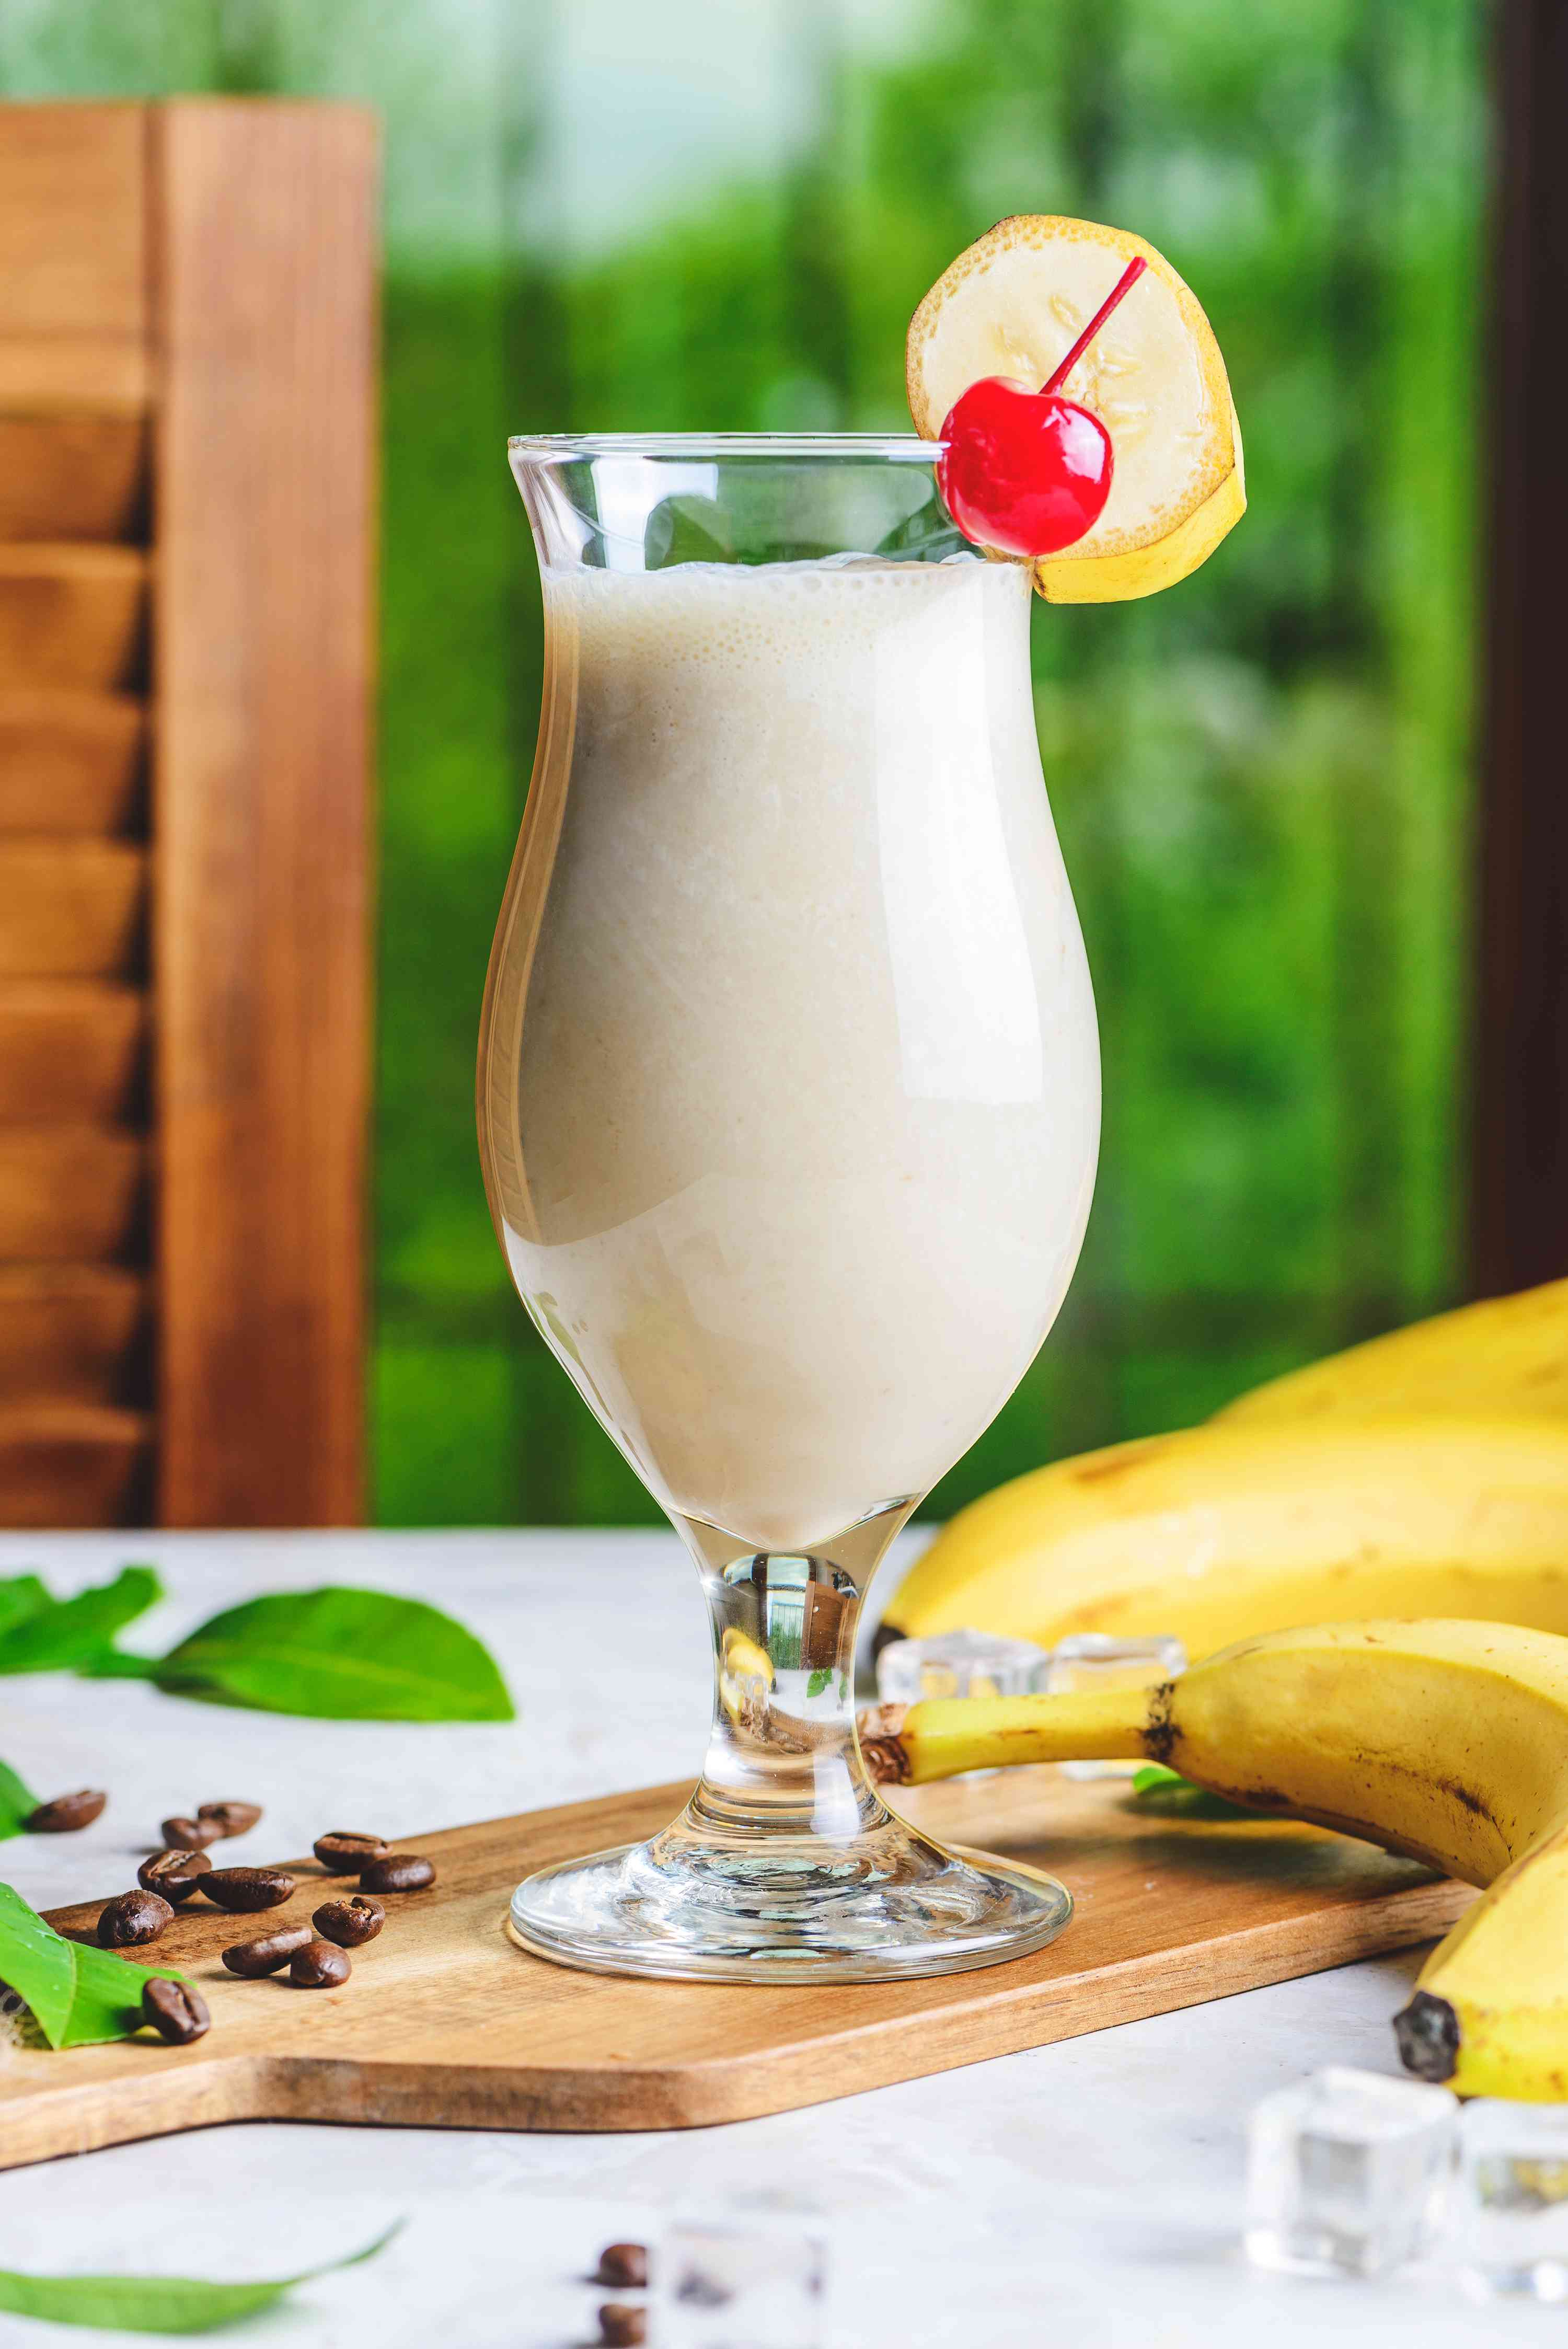 Dirty banana cocktail, ready to serve, with cherry and banana garnishes